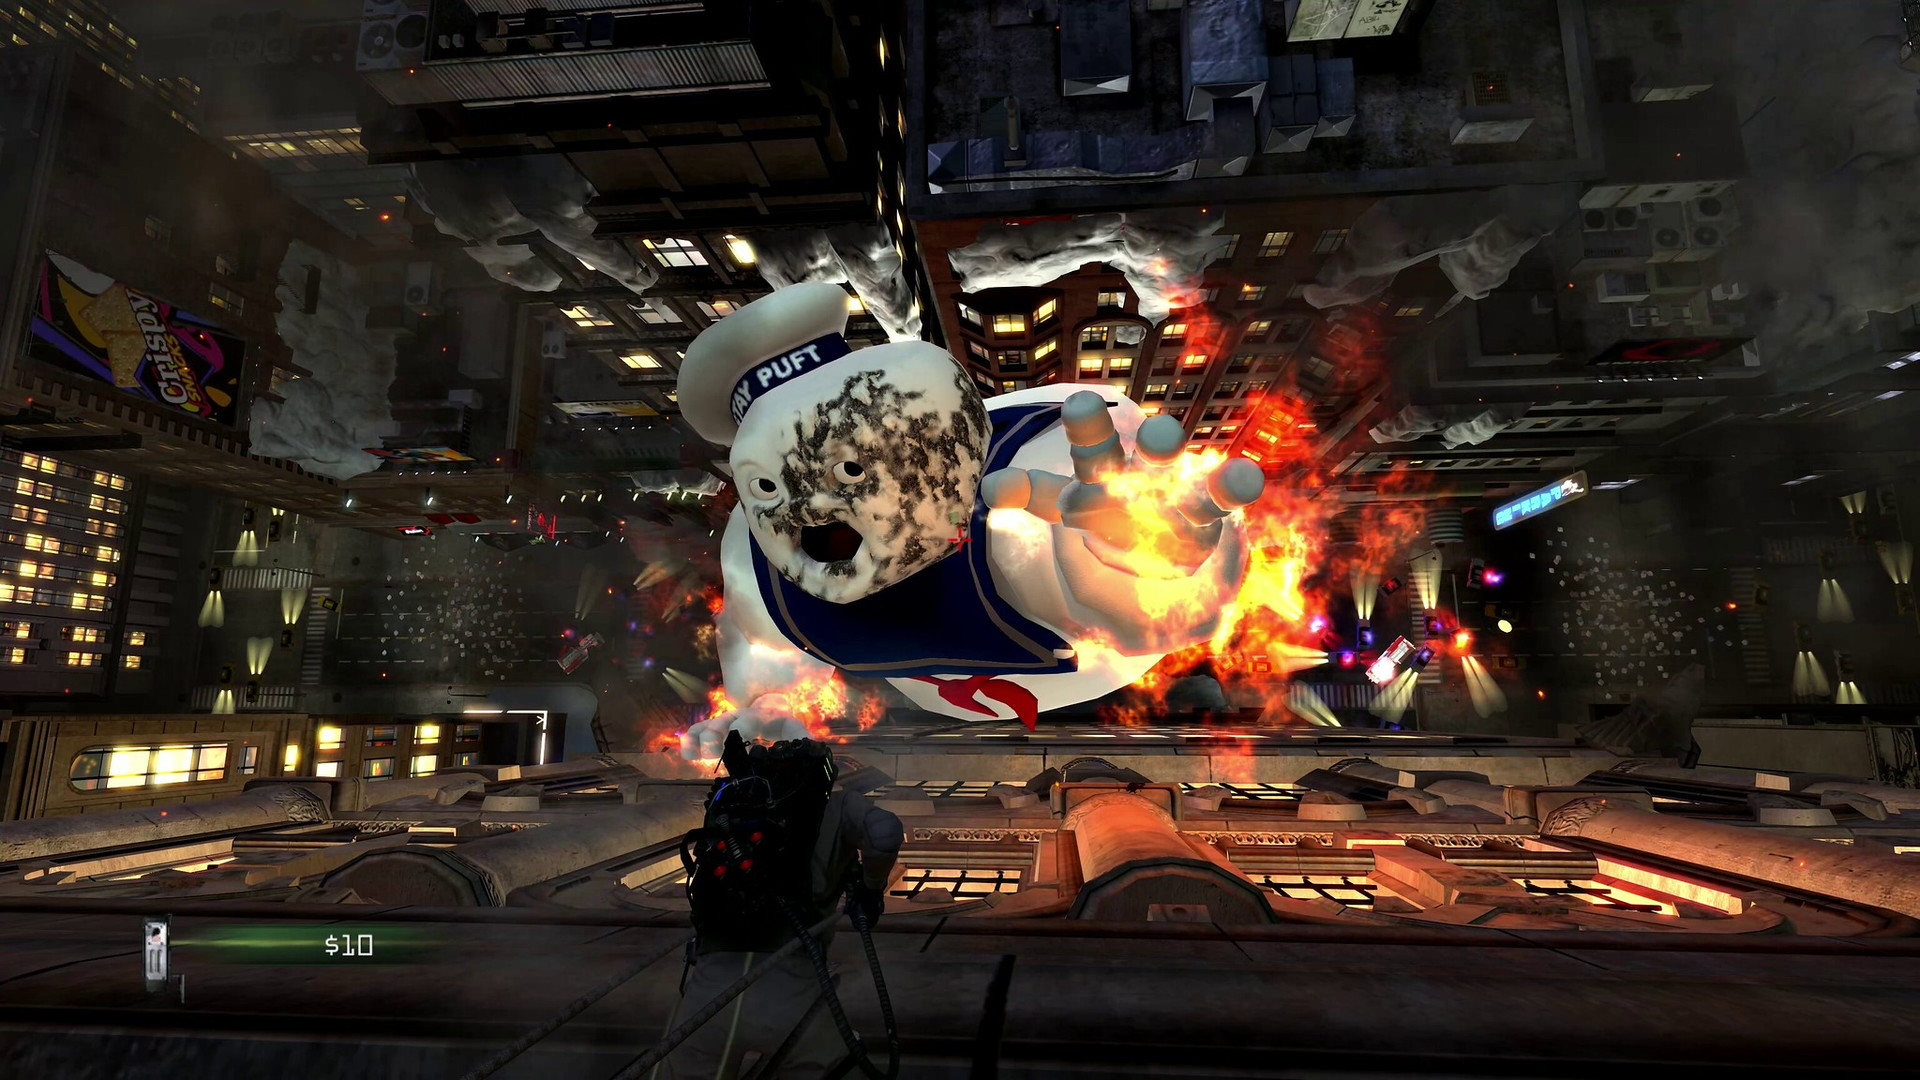 Ghostbusters: The Video Game - Remastered - screenshot 1